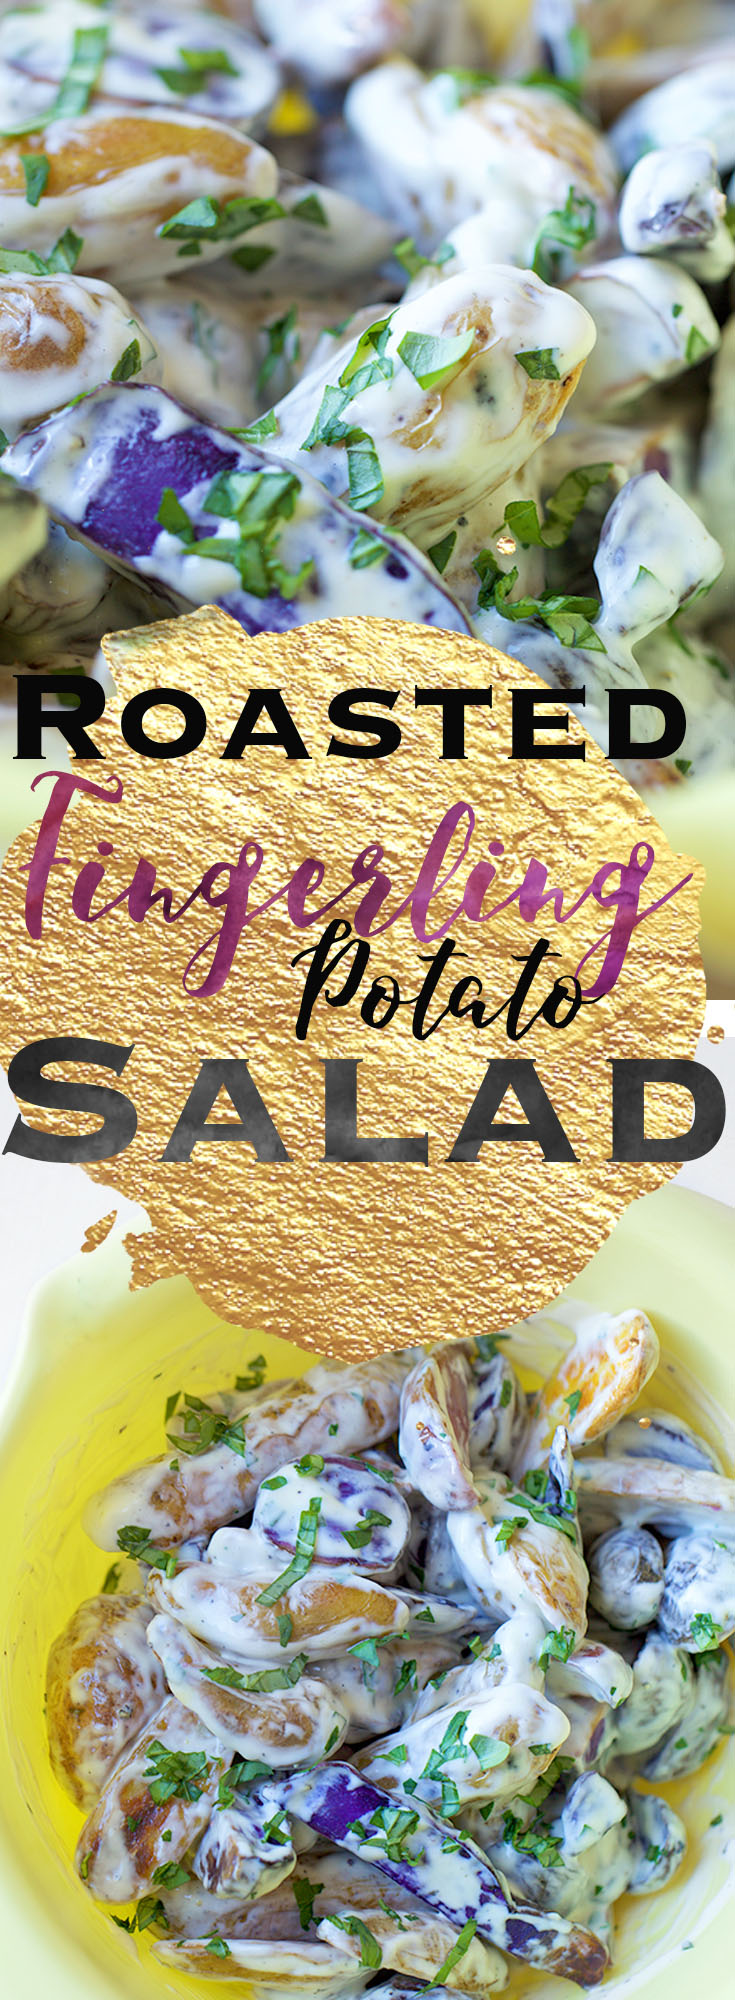 Roasted Fingerling Potato Salad || This Roasted Fingerling Potato Salad is the perfect side dish for all your summer barbecues this year!  A simple and easy recipe that combines a creamy, tangy, slightly sweet dressing with perfectly crisp potatoes. Perfect to make ahead! || www.withbutterandlove.com